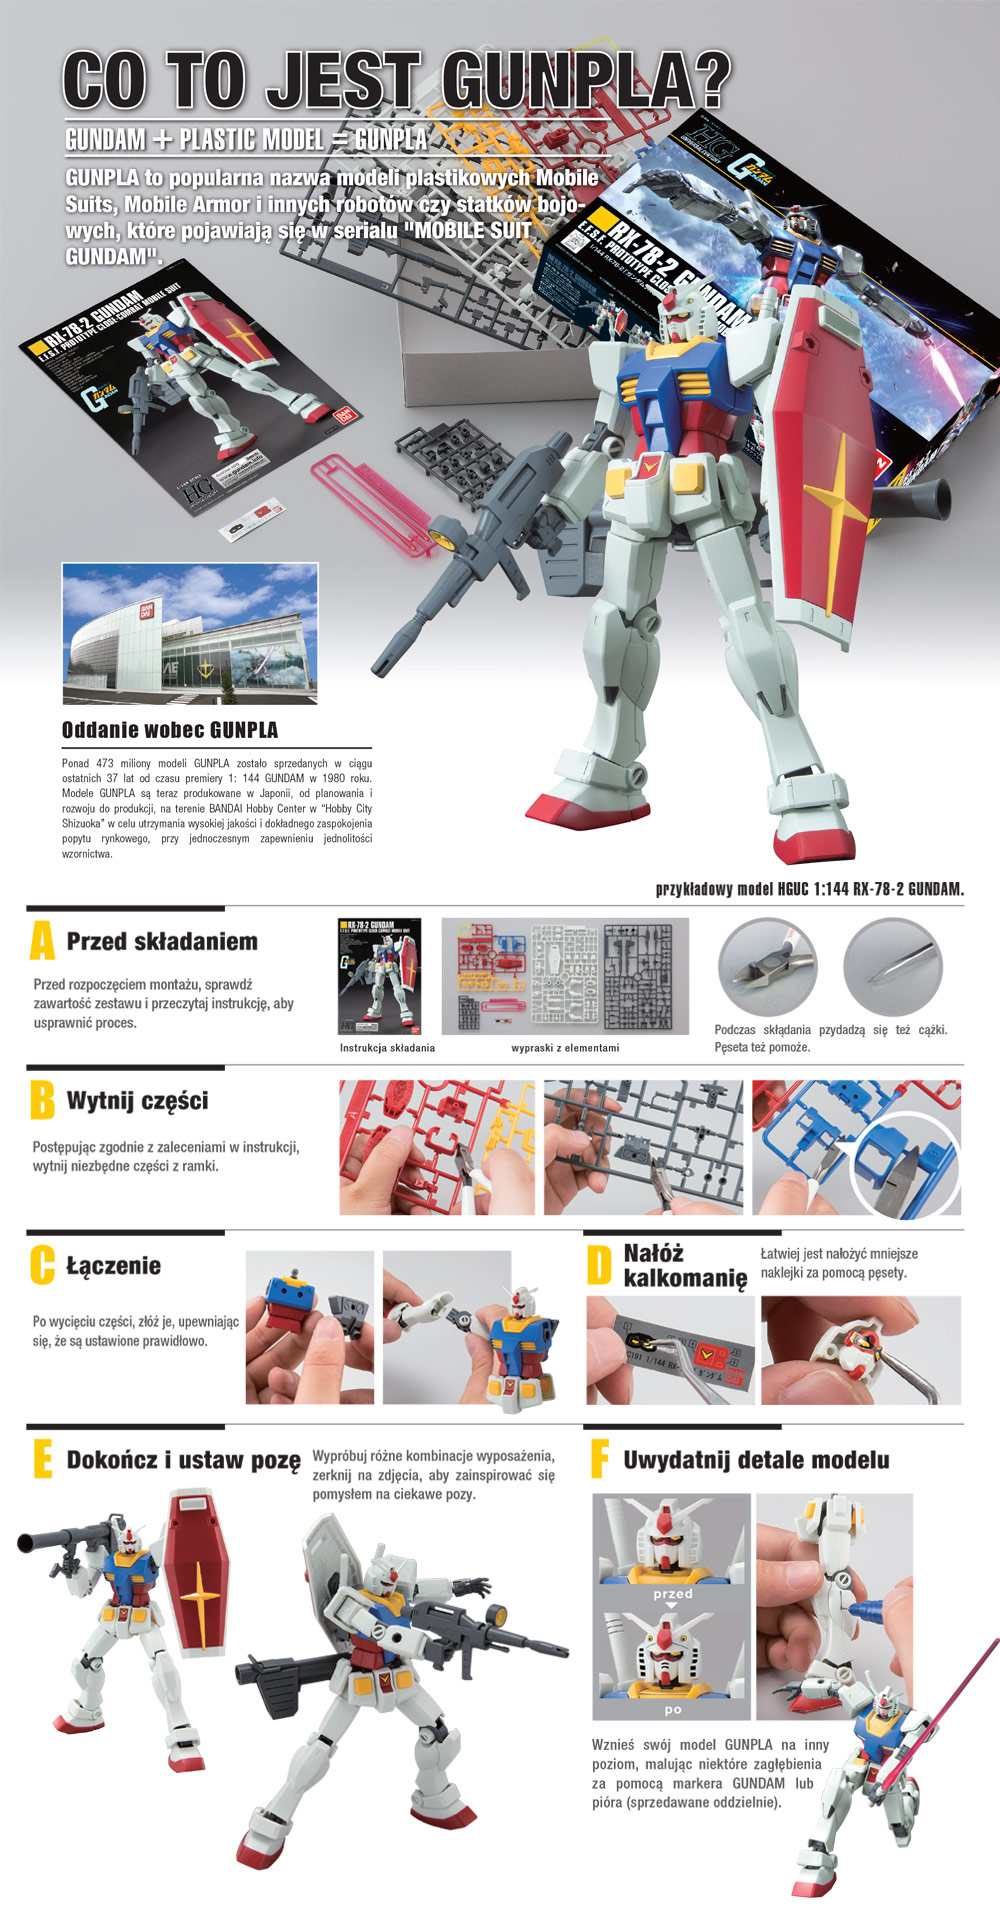 gunpla_whatitis_info_2019.jpg